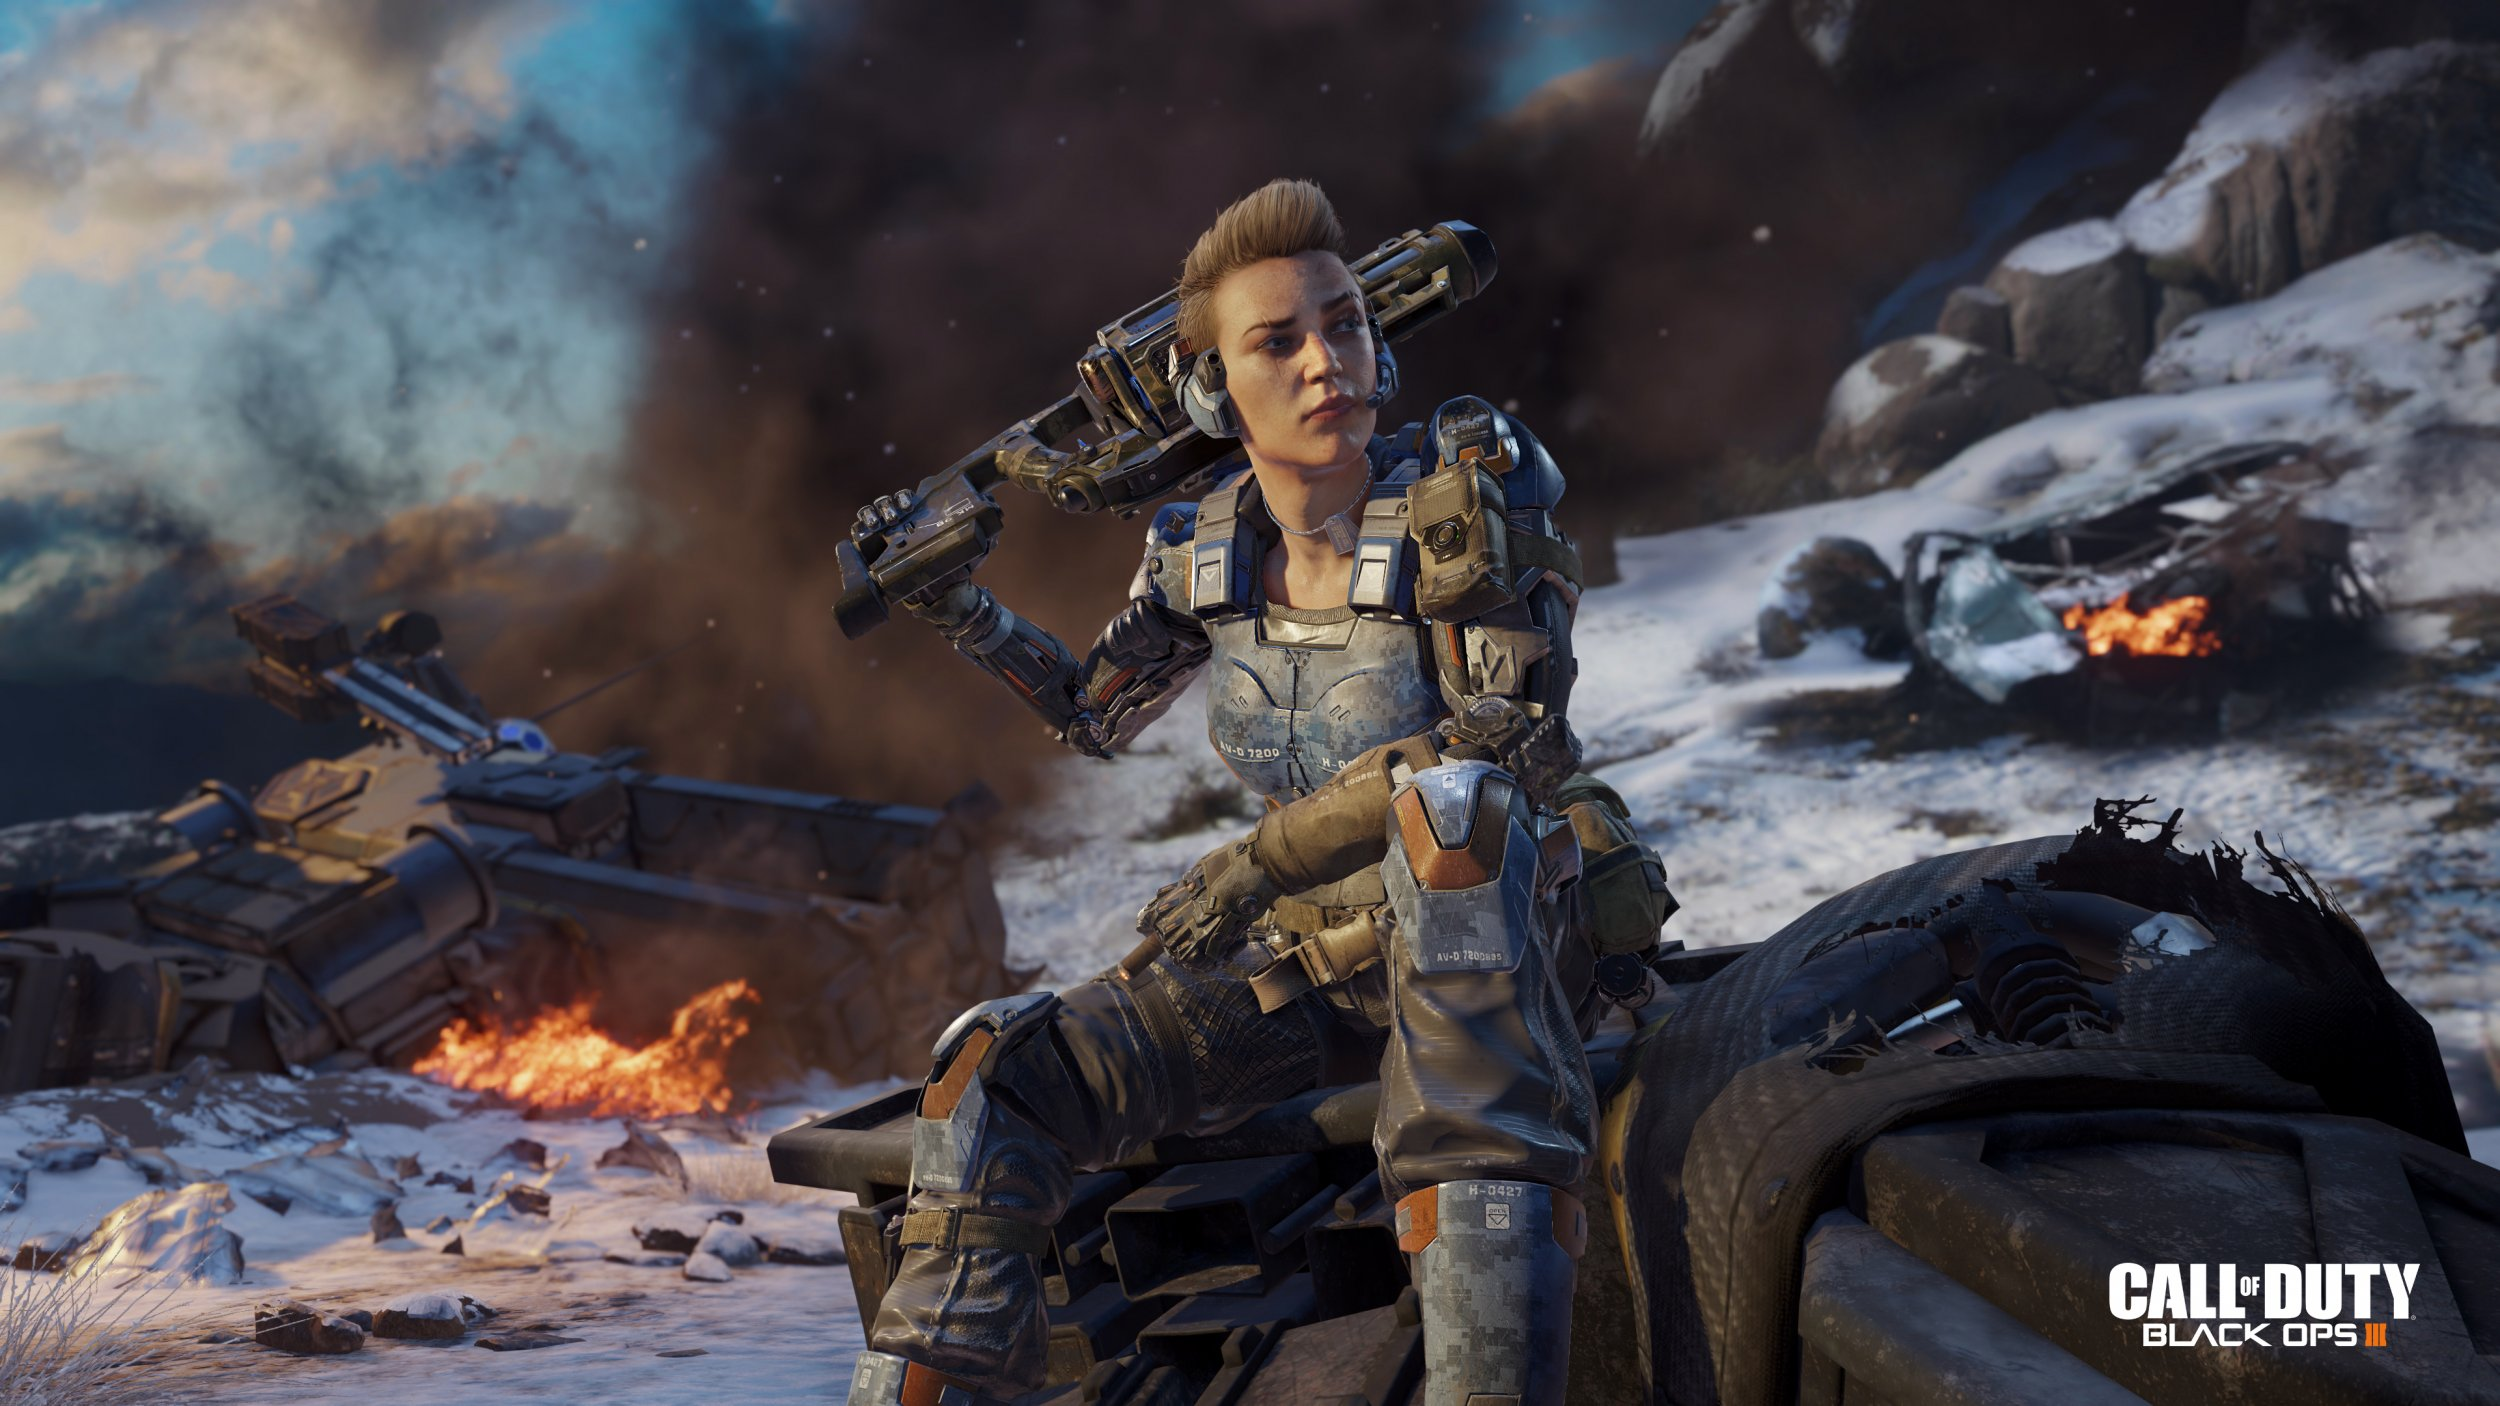 Beta of 'Call of Duty: Black Ops 3' Shows a Slower, More